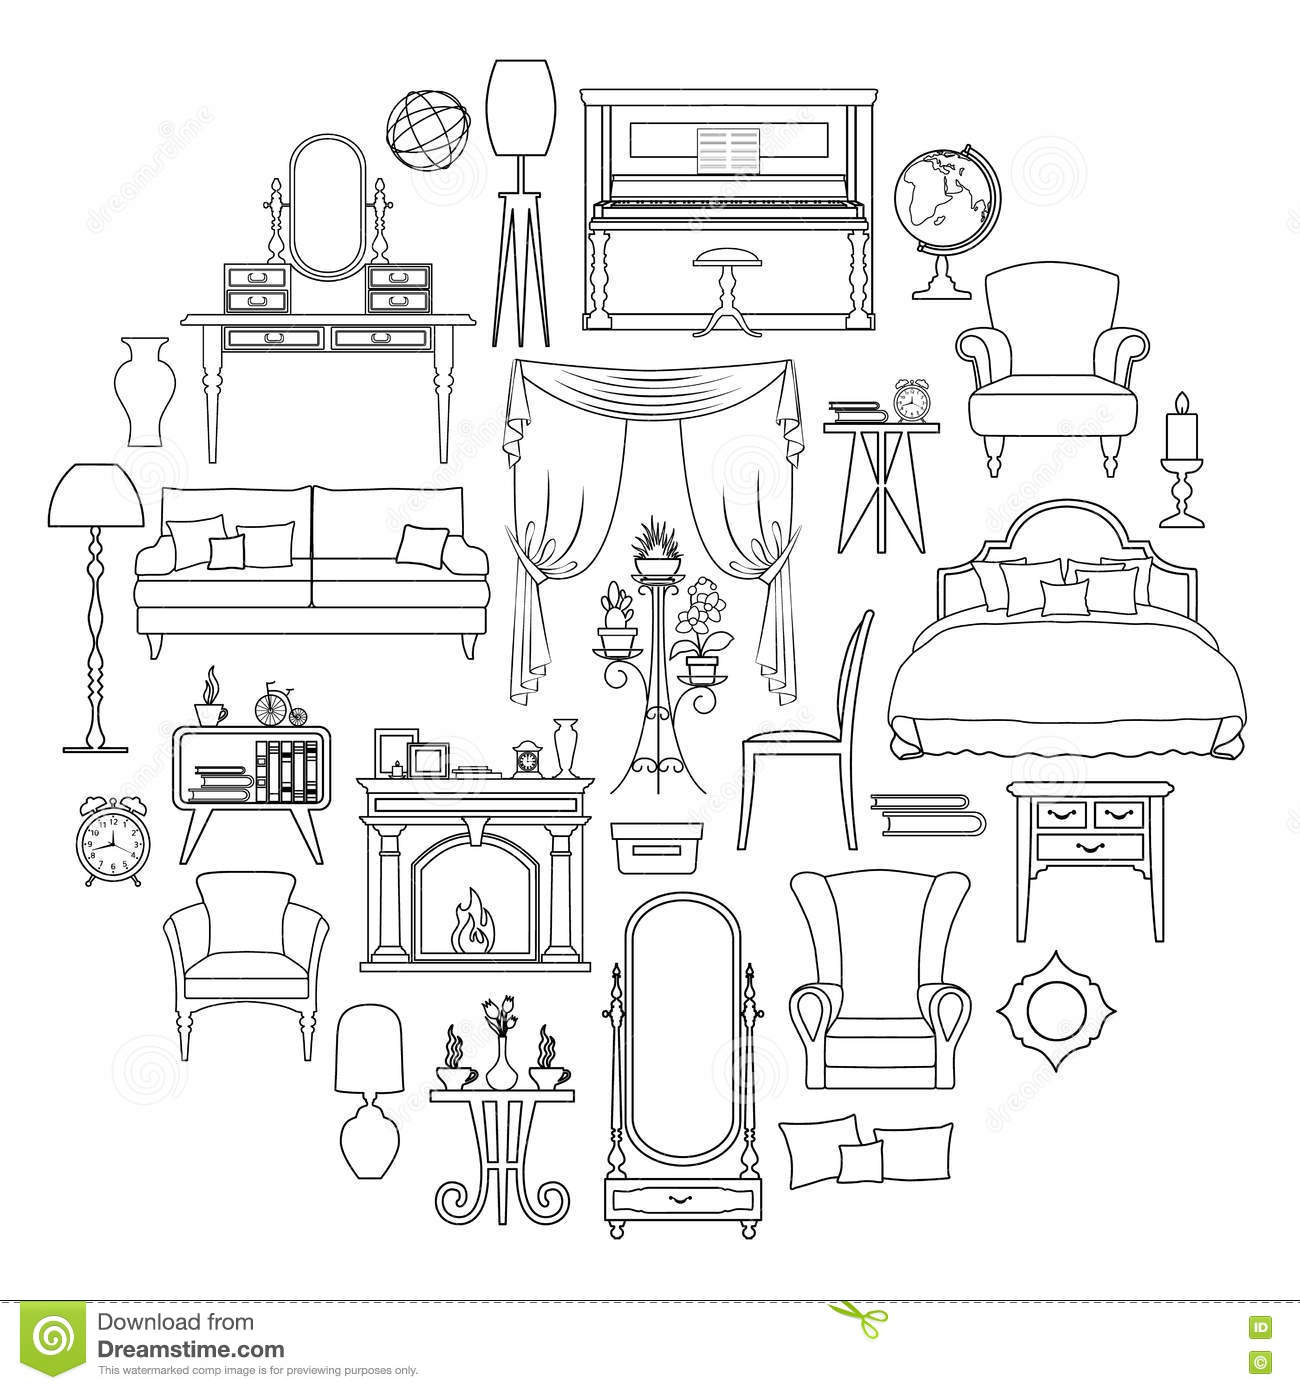 furniture and home interior set icons in outline style  cartoon vector